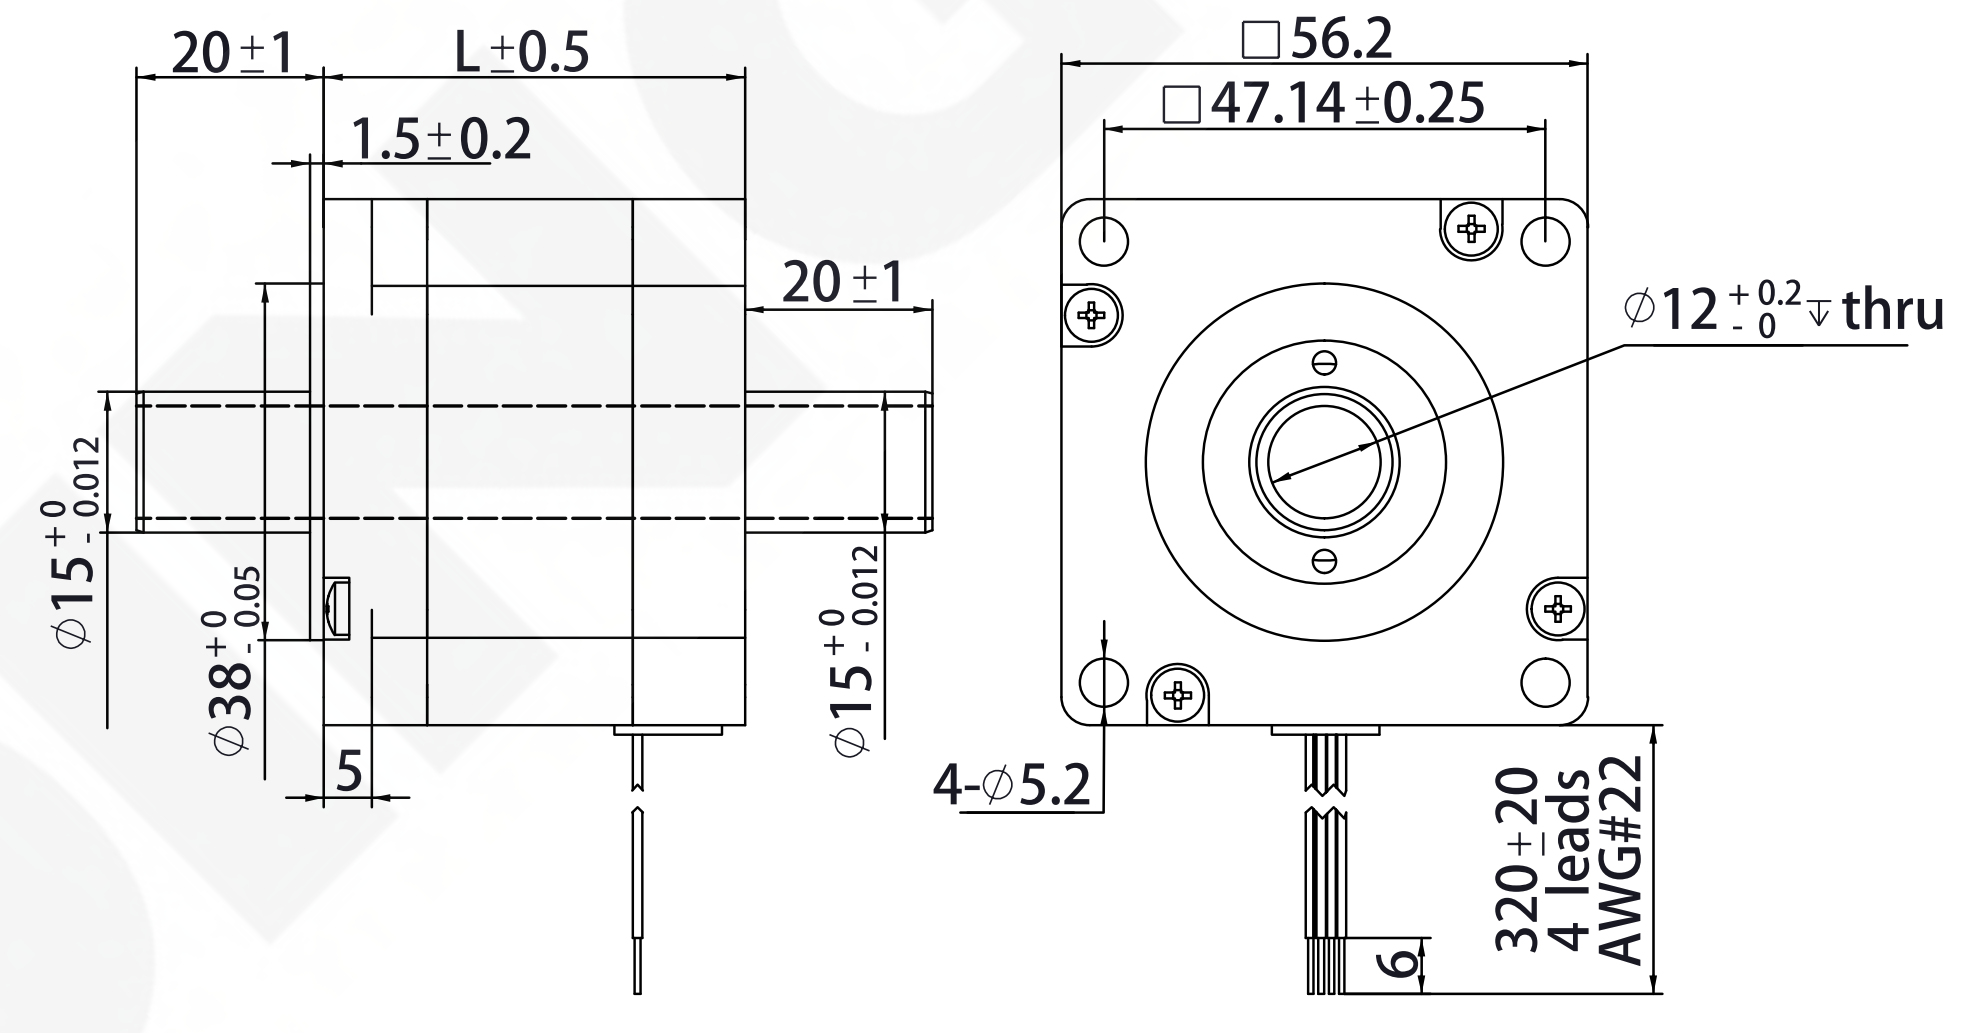 NEMA 23 Hollow Shaft Motor Drawing